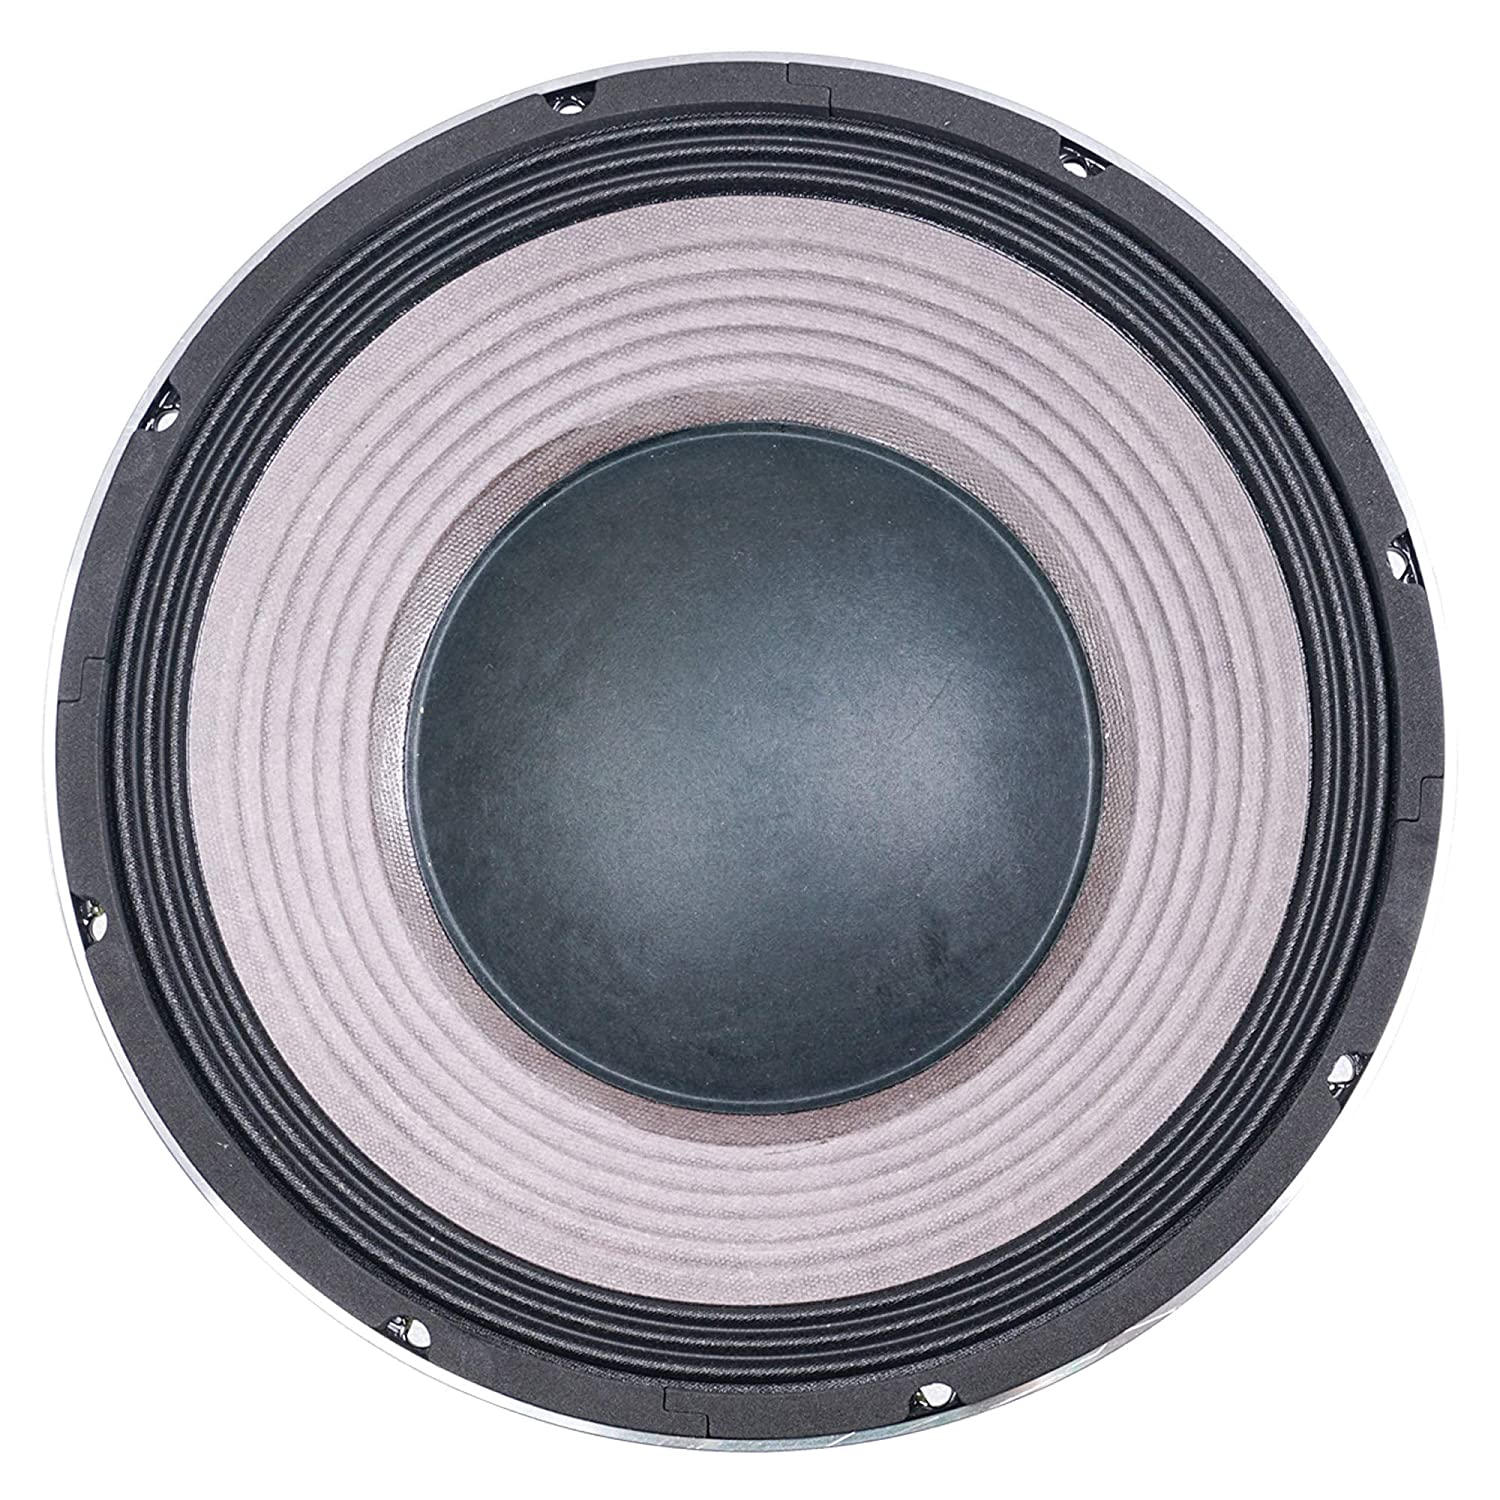 """STLF-18120A Low Frequency Driver Replacement Woofer for PA//DJ Subwoofer Cabinets Sound Town 18/"""" 500W Cast Aluminum Frame Woofer"""